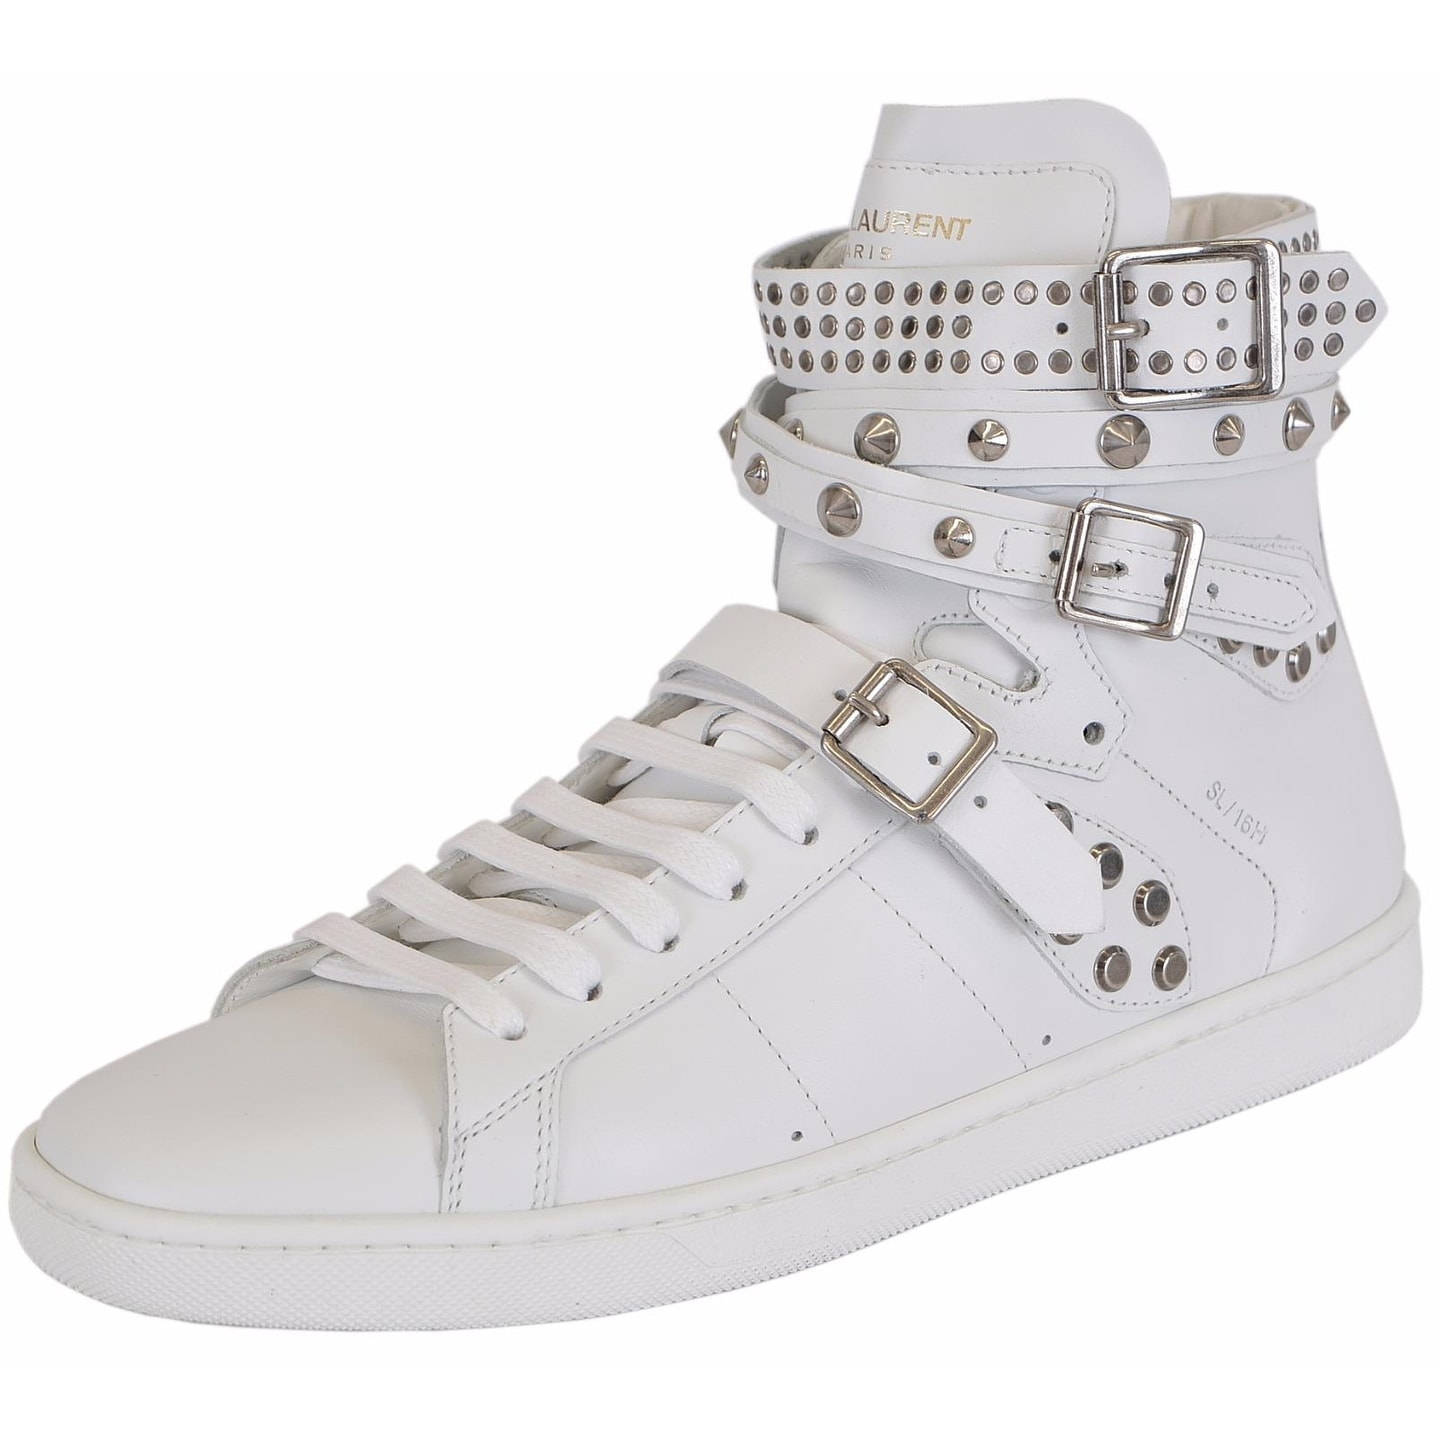 2759a2008c2 Shop Yves Saint Laurent YSL Women's White Studded Court Classic Hi Top  Sneakers Shoes - Free Shipping Today - Overstock - 14535024